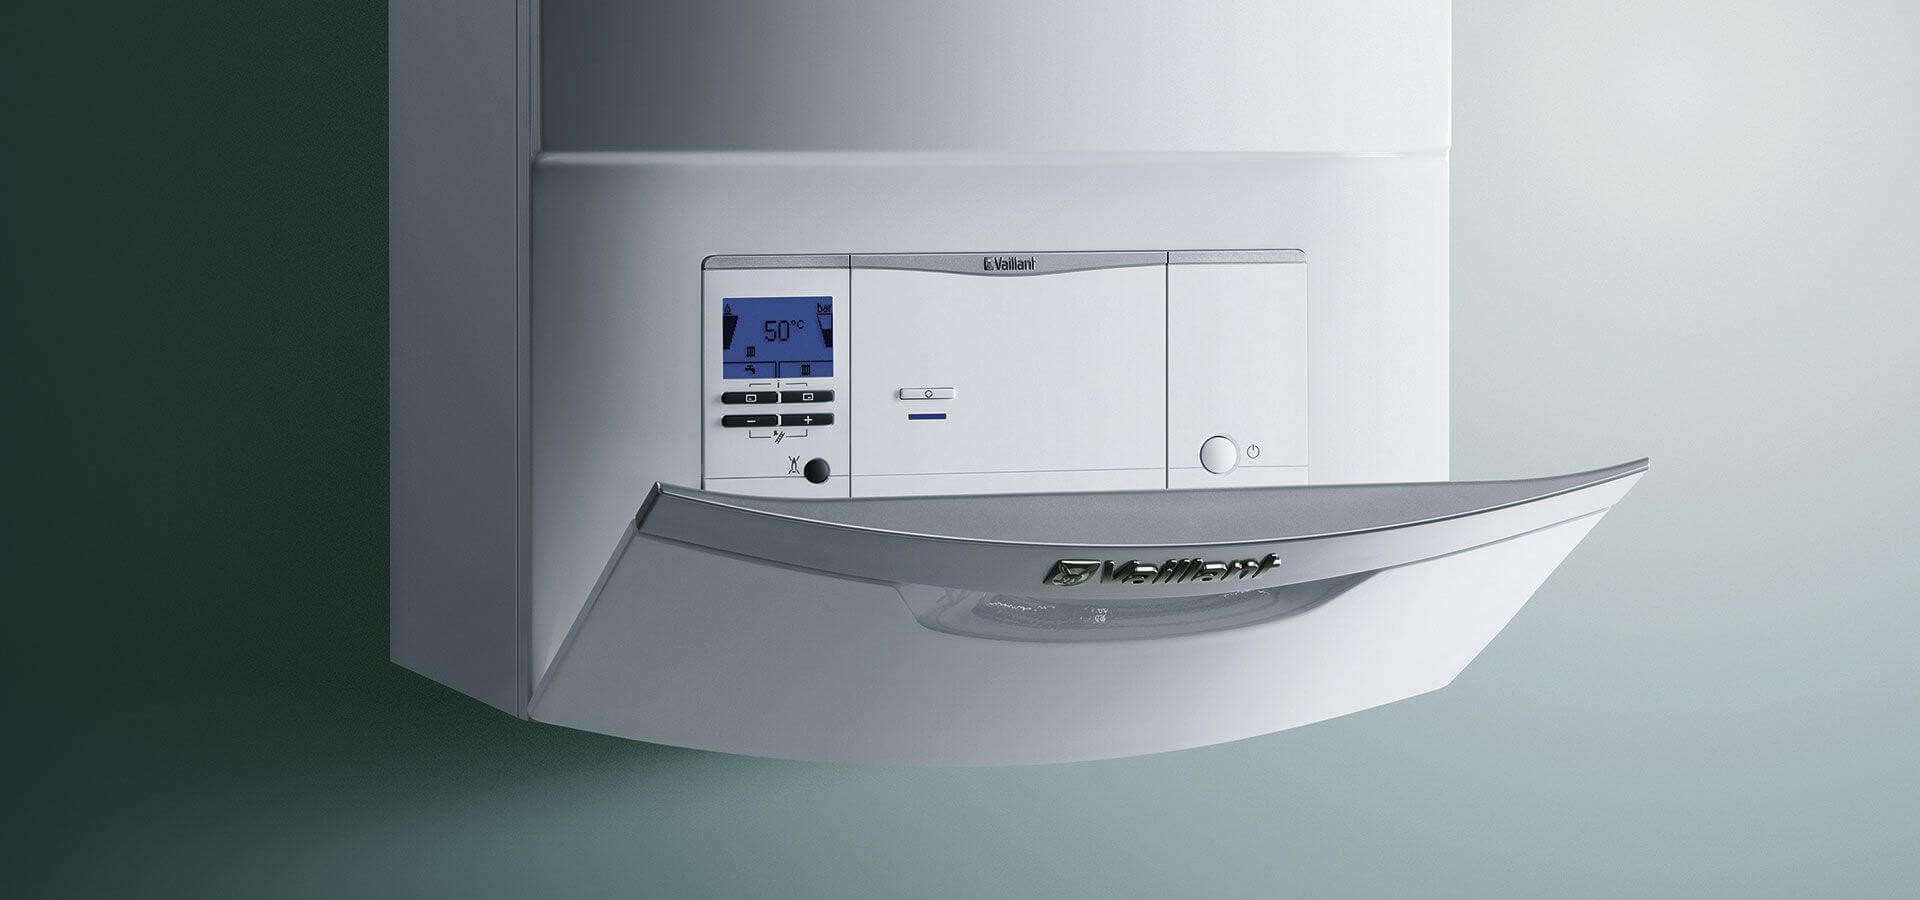 Vaillant Eco-Tec Plus